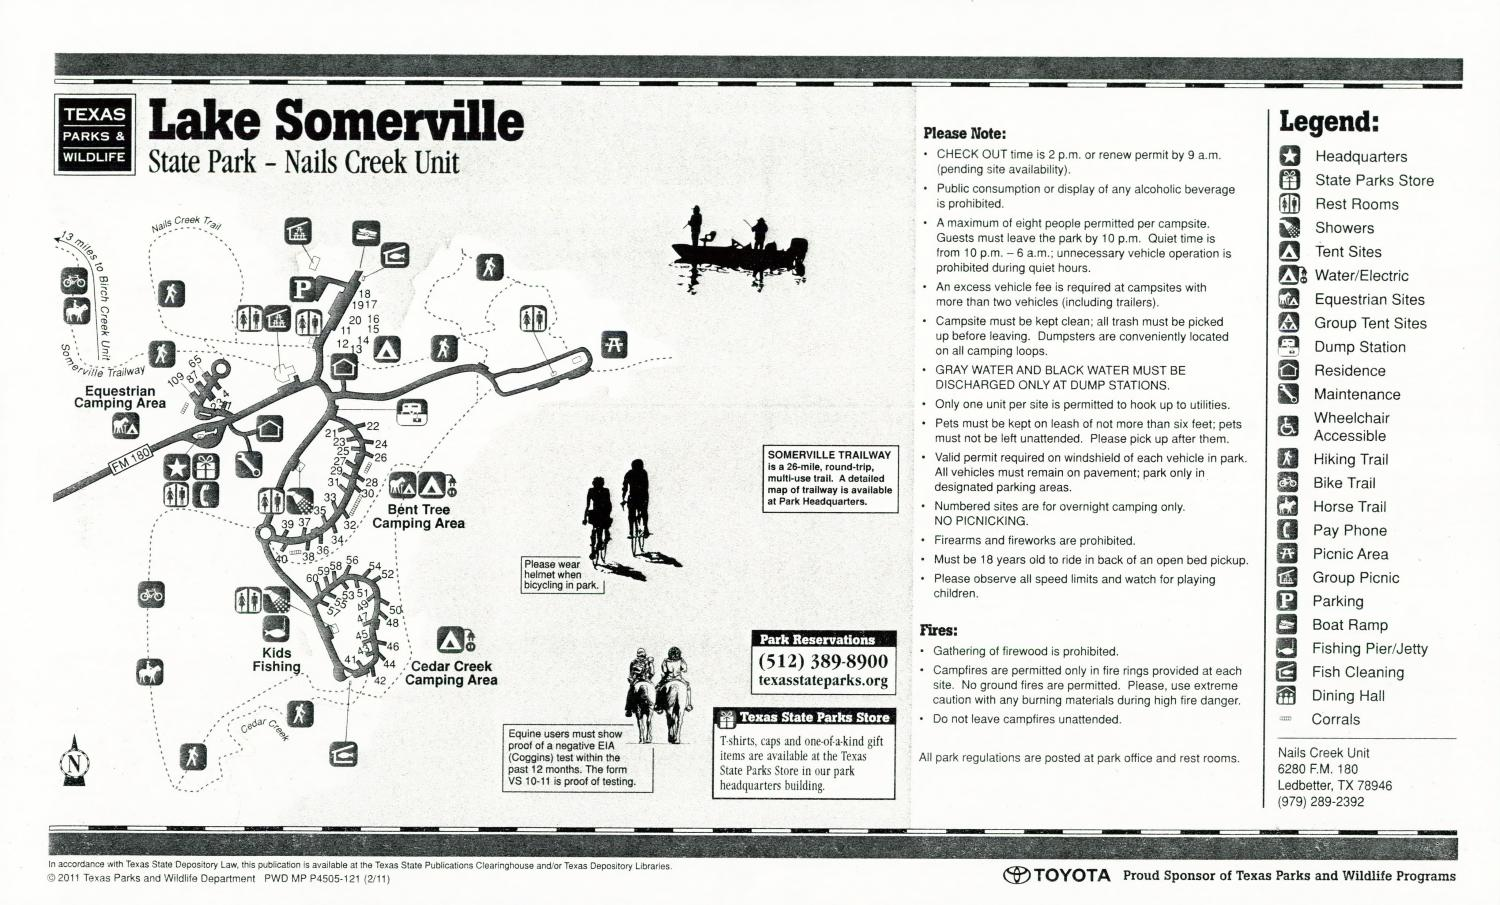 Lake Somerville State Park - Nails Creek Unit, Map of the Lake Somerville State Park - Nails Creek Unit outlining hiking trails and highlighting activities, facilities, and other features such as bathrooms, lodgings, water/electric, etc. It also contains general information for the park and for the Texas Parks and Wildlife Department. There is also a few advertisements, including information on purchasing a Texas State Parks Pass.,